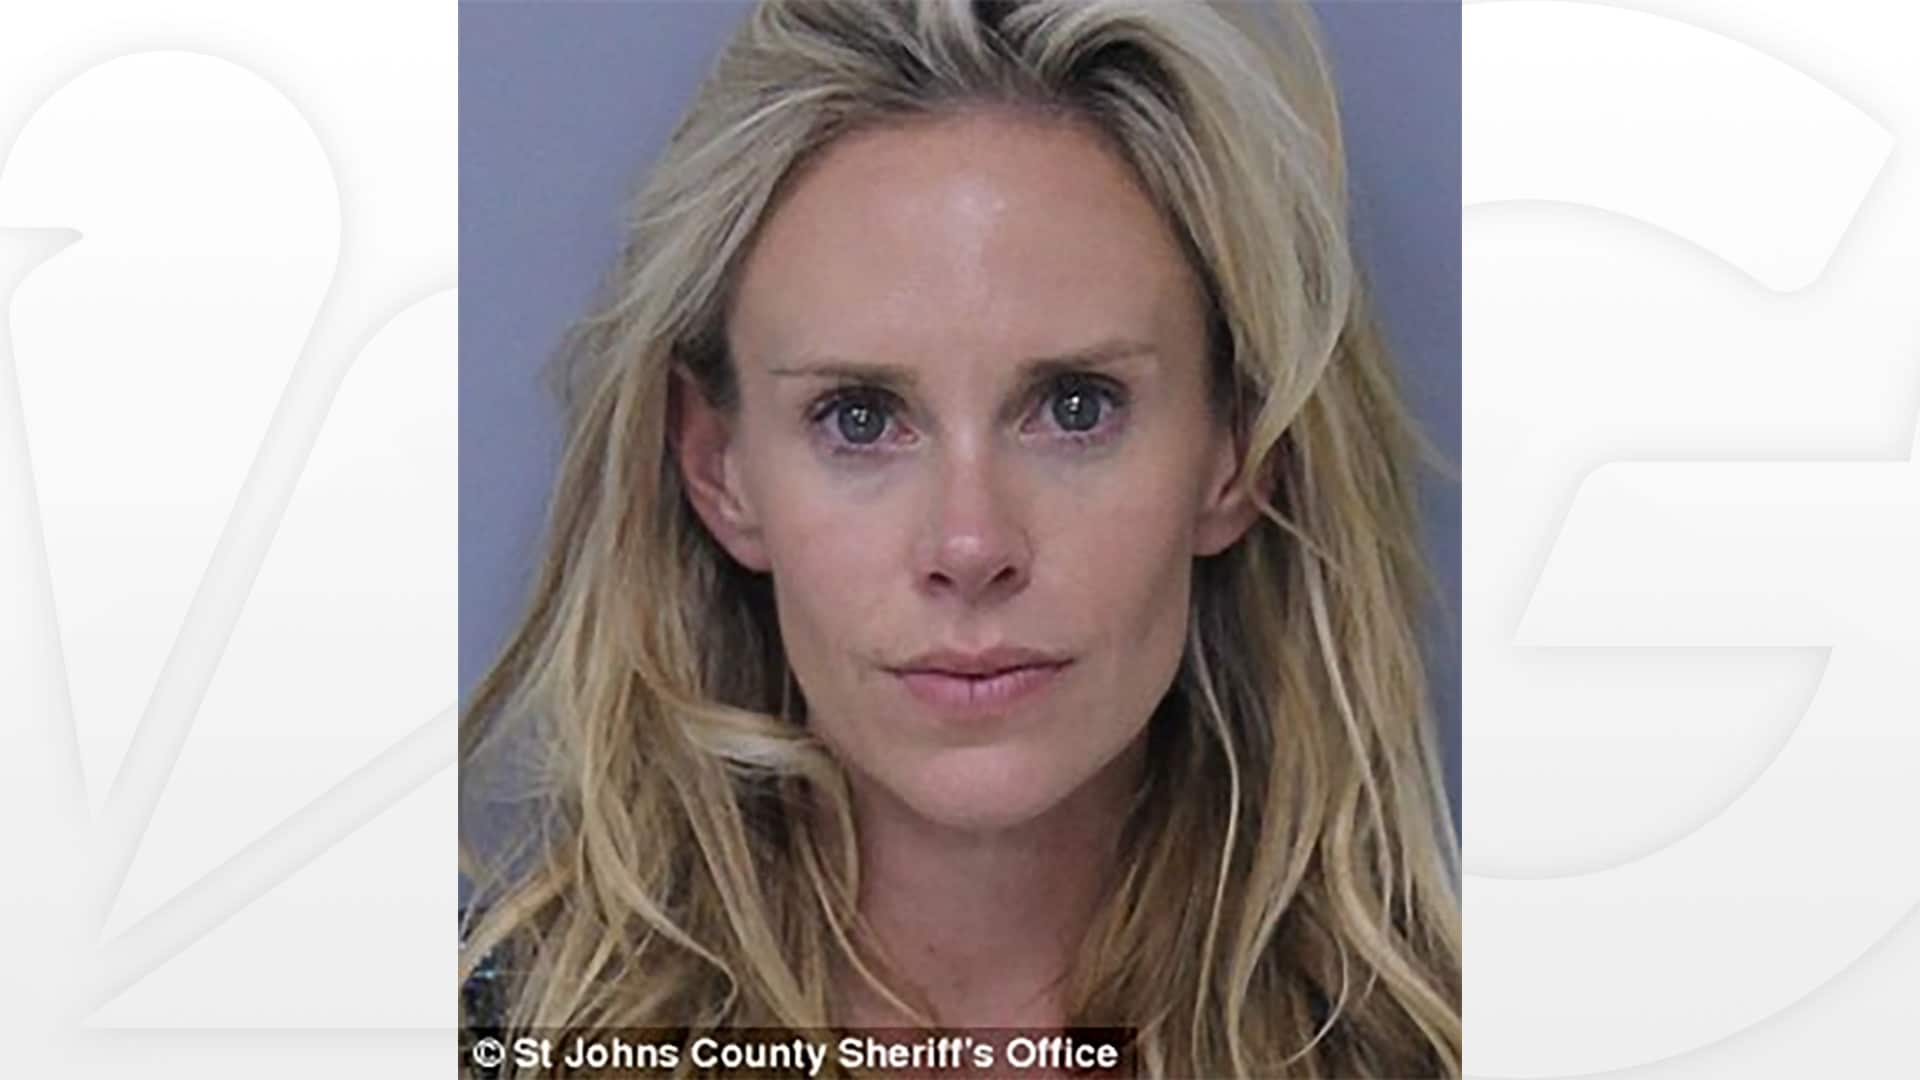 Lucas Glover's wife Krista arrested for domestic violence | Golf Channel